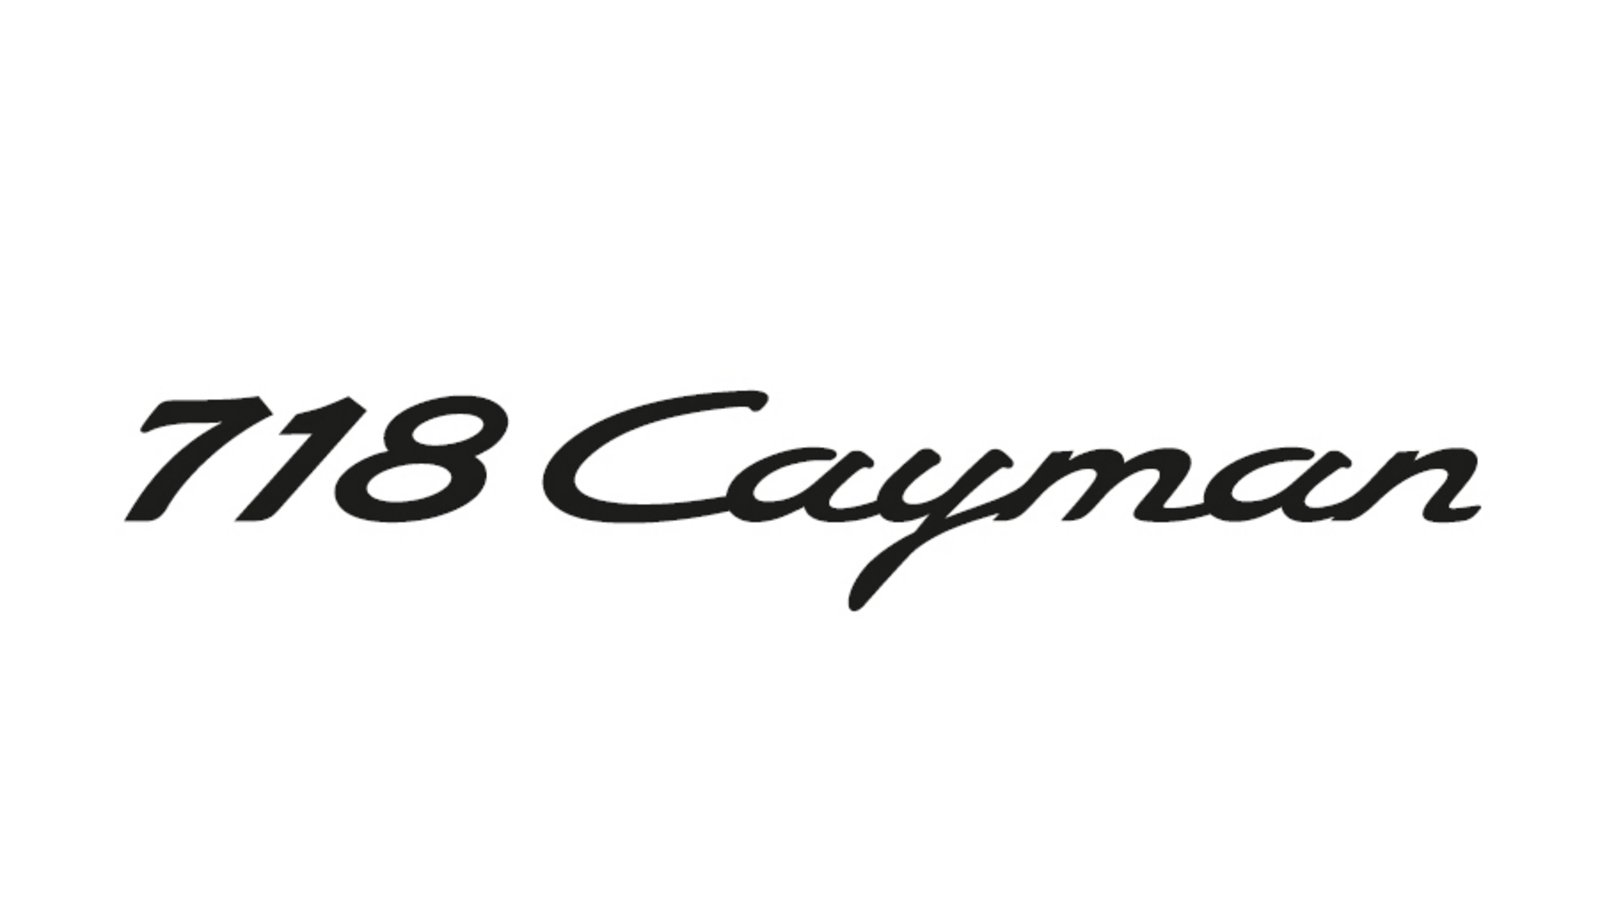 Porsche Cayman And Boxster Will Be Renamed To 718 Cayman